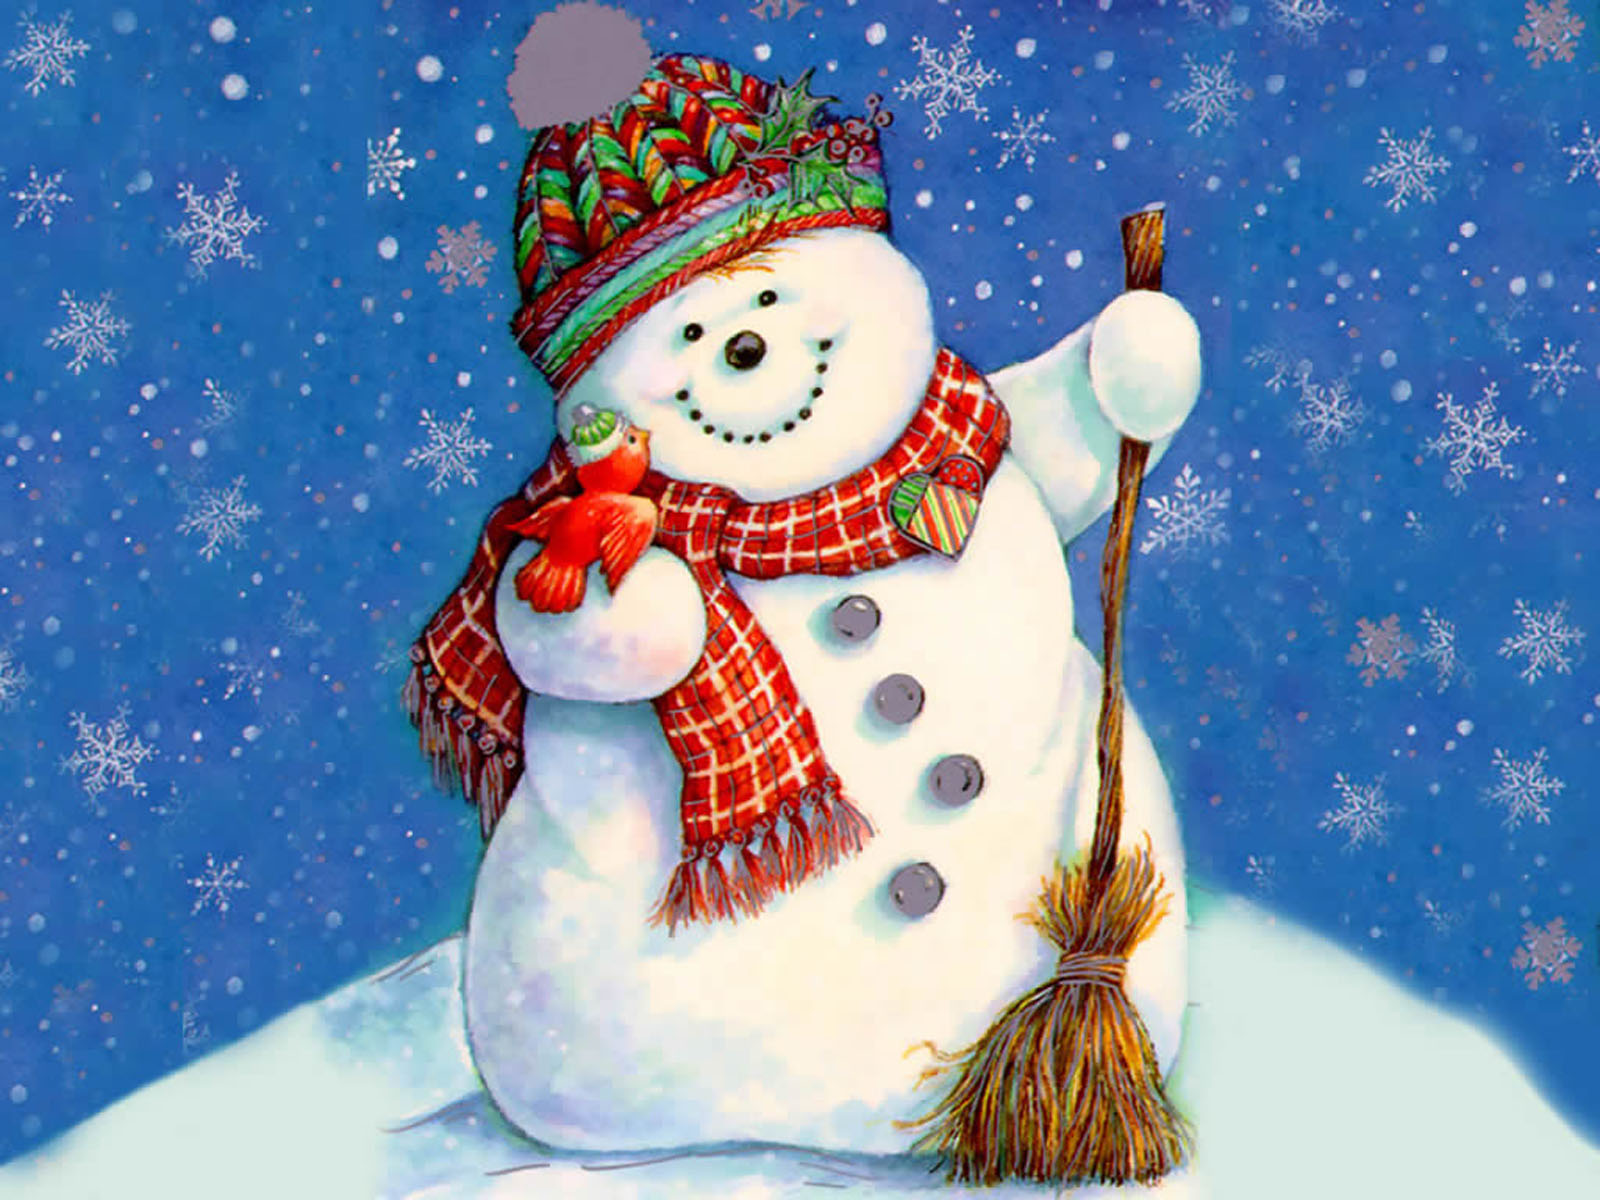 wallpapers Christmas Snowman Wallpapers 1600x1200